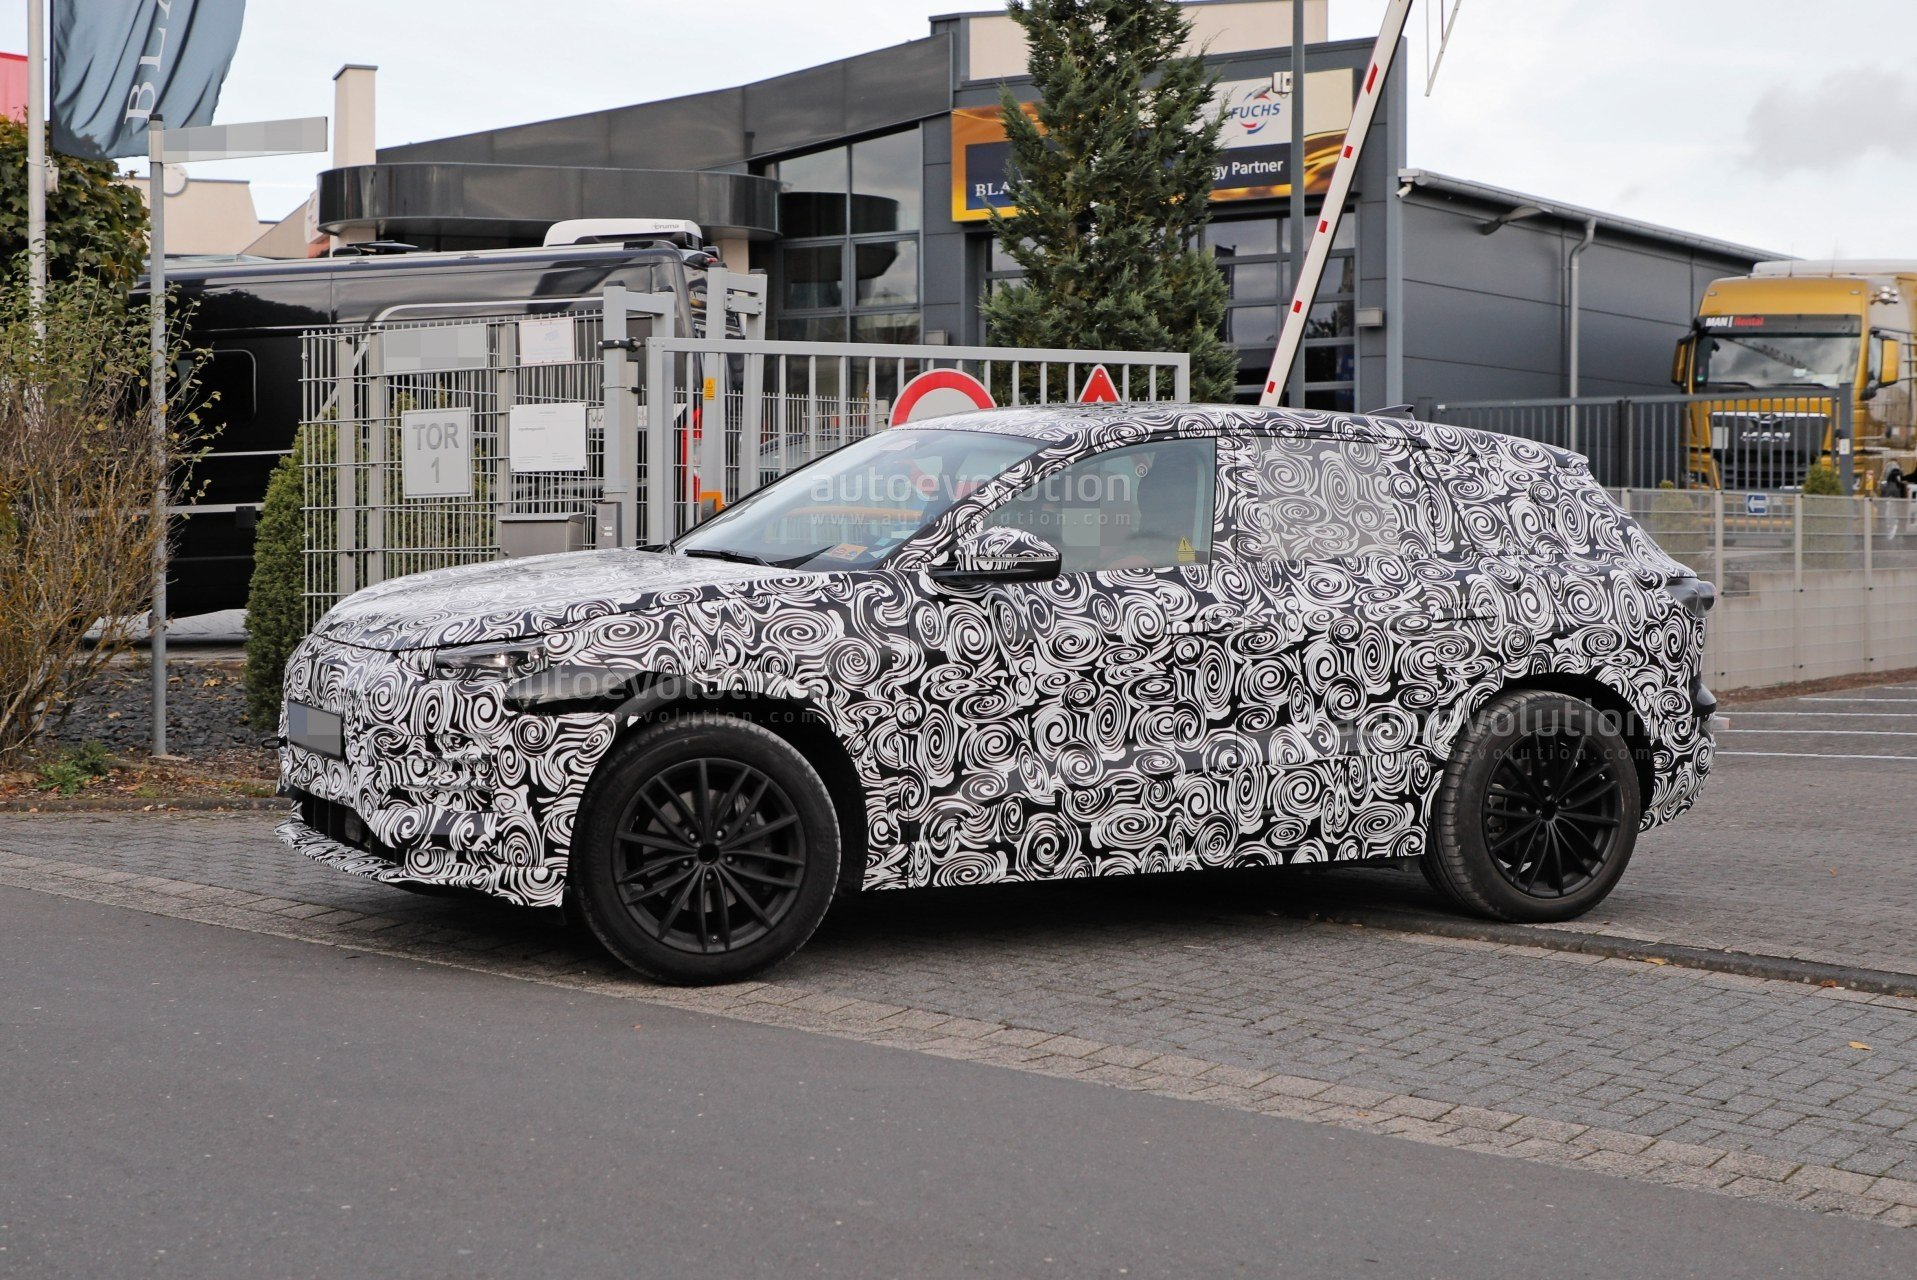 2023-audi-q6-e-tron-prototype-spied-wearing-full-camouflage-is-fully-electric_6 (1).jpg